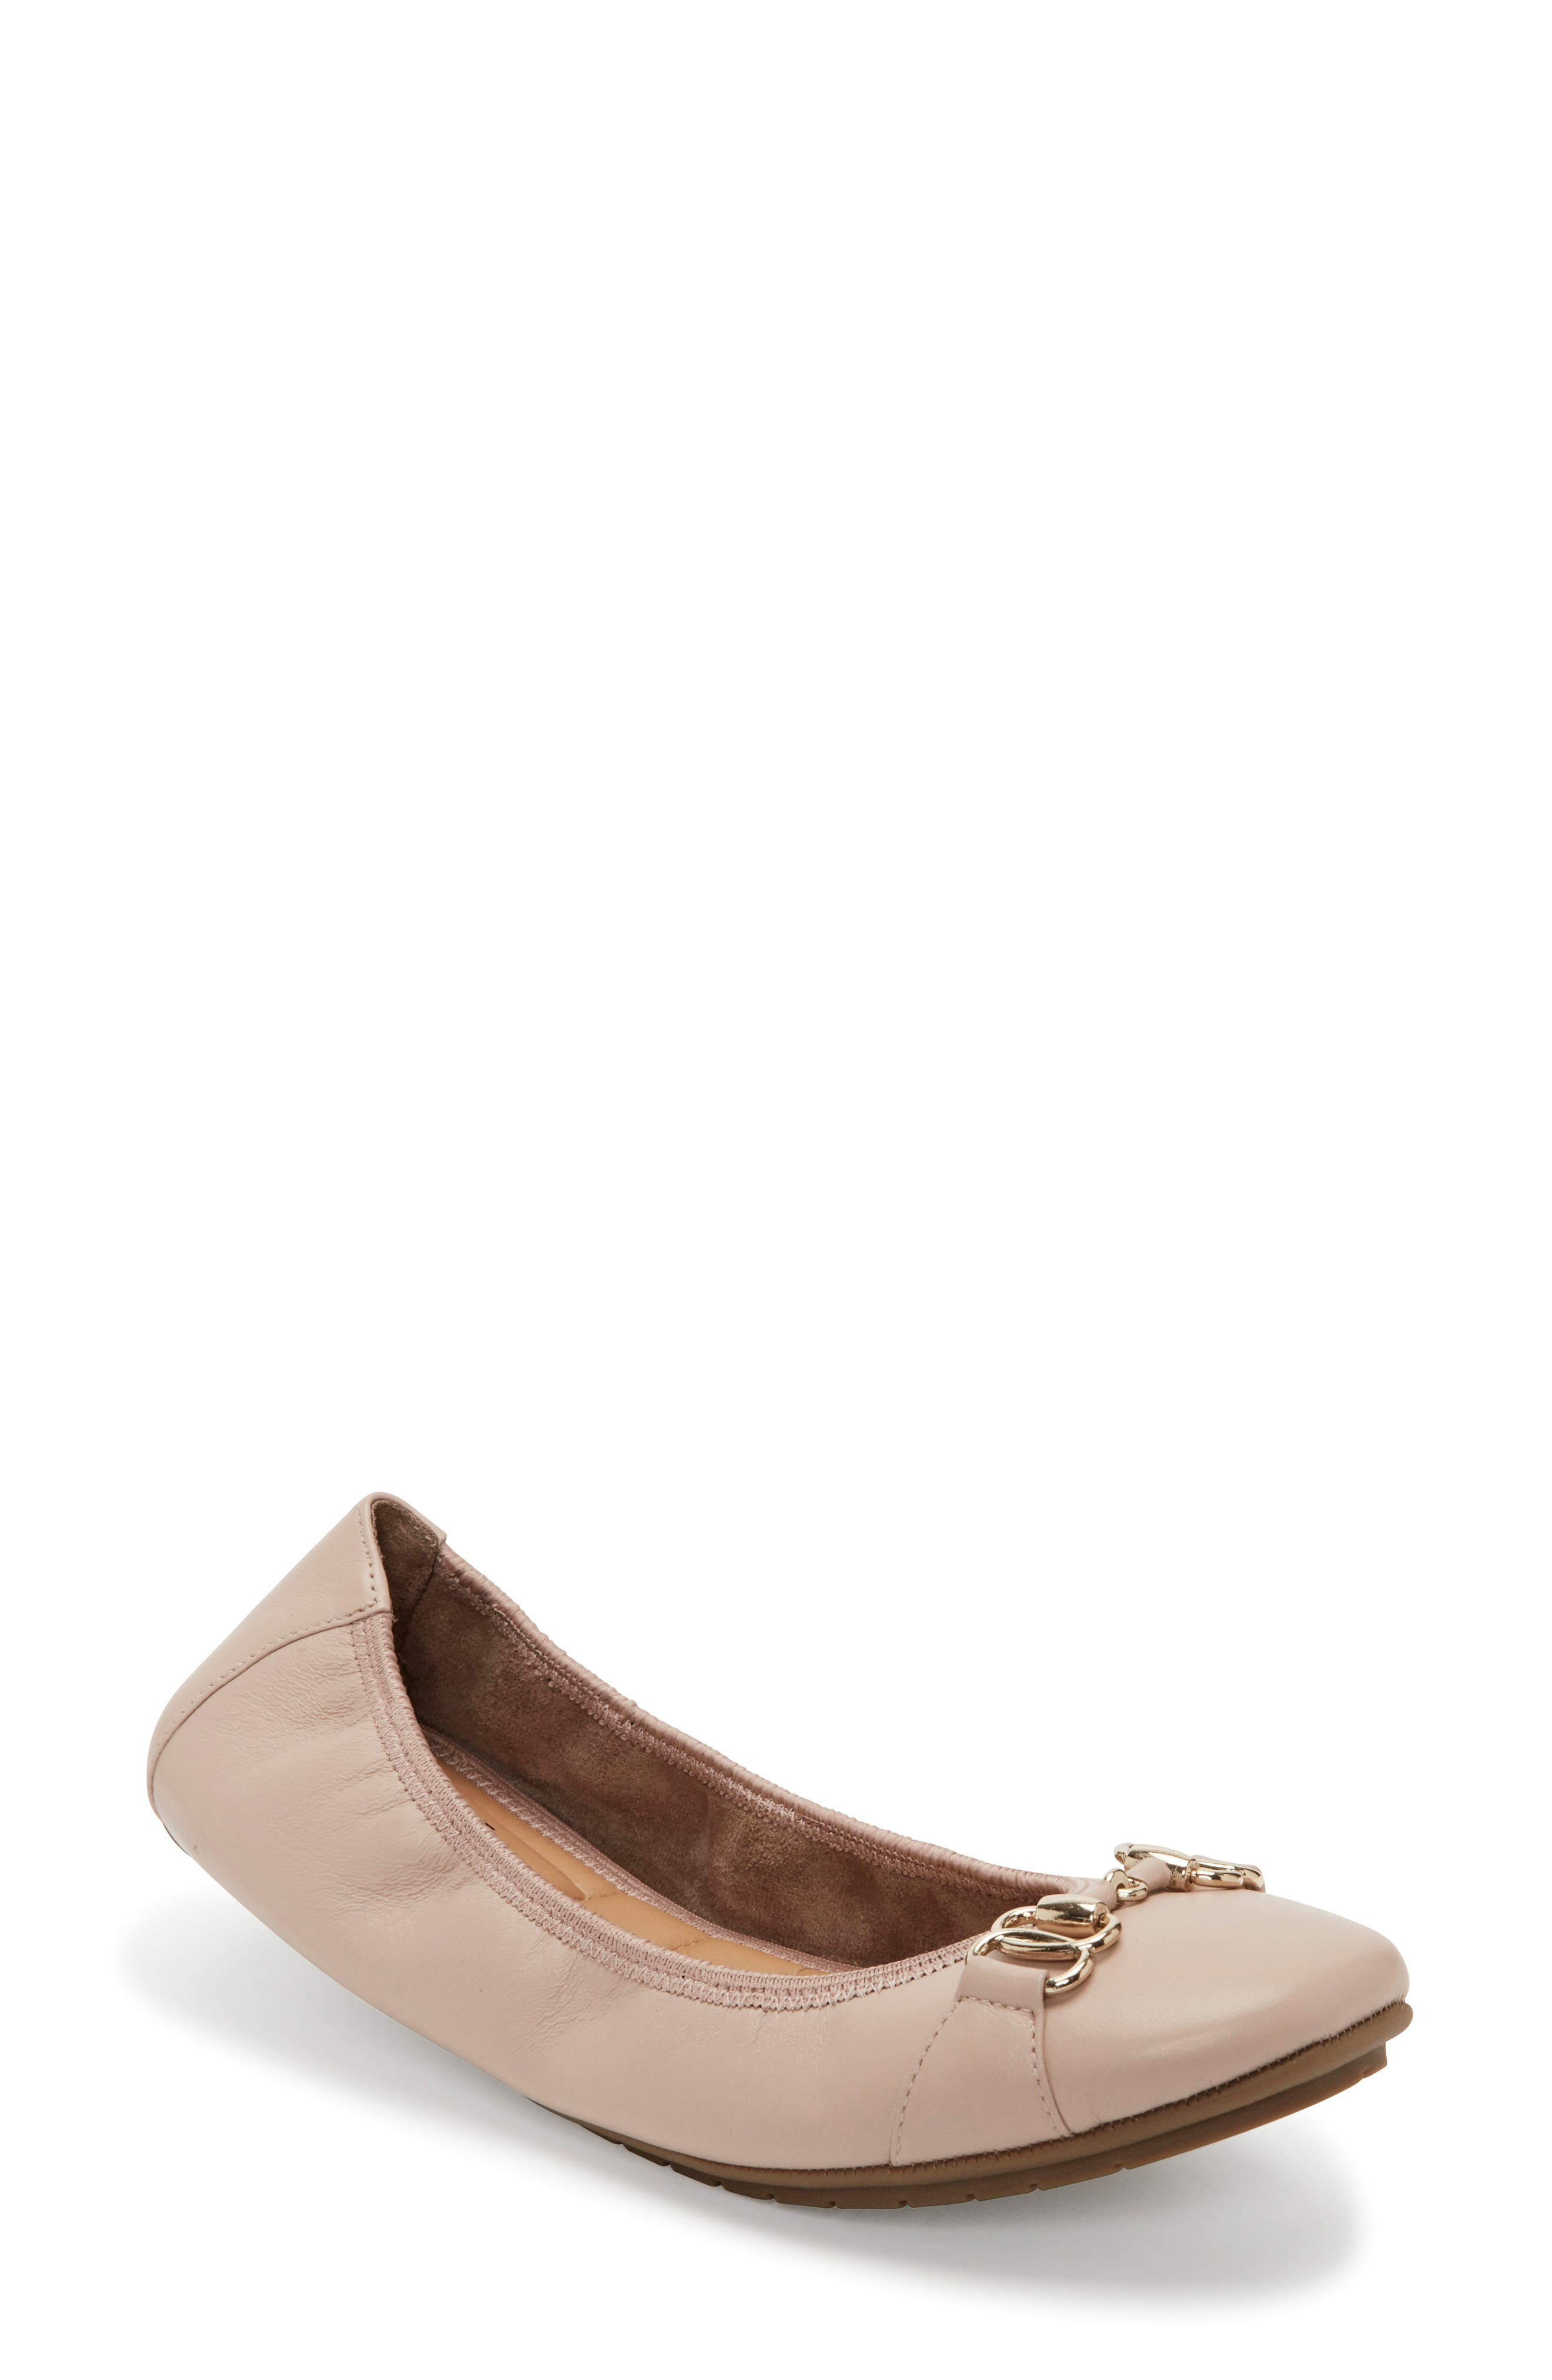 ME TOO Olympia Skimmer Flat, Main, color, DRIFTWOOD LEATHER